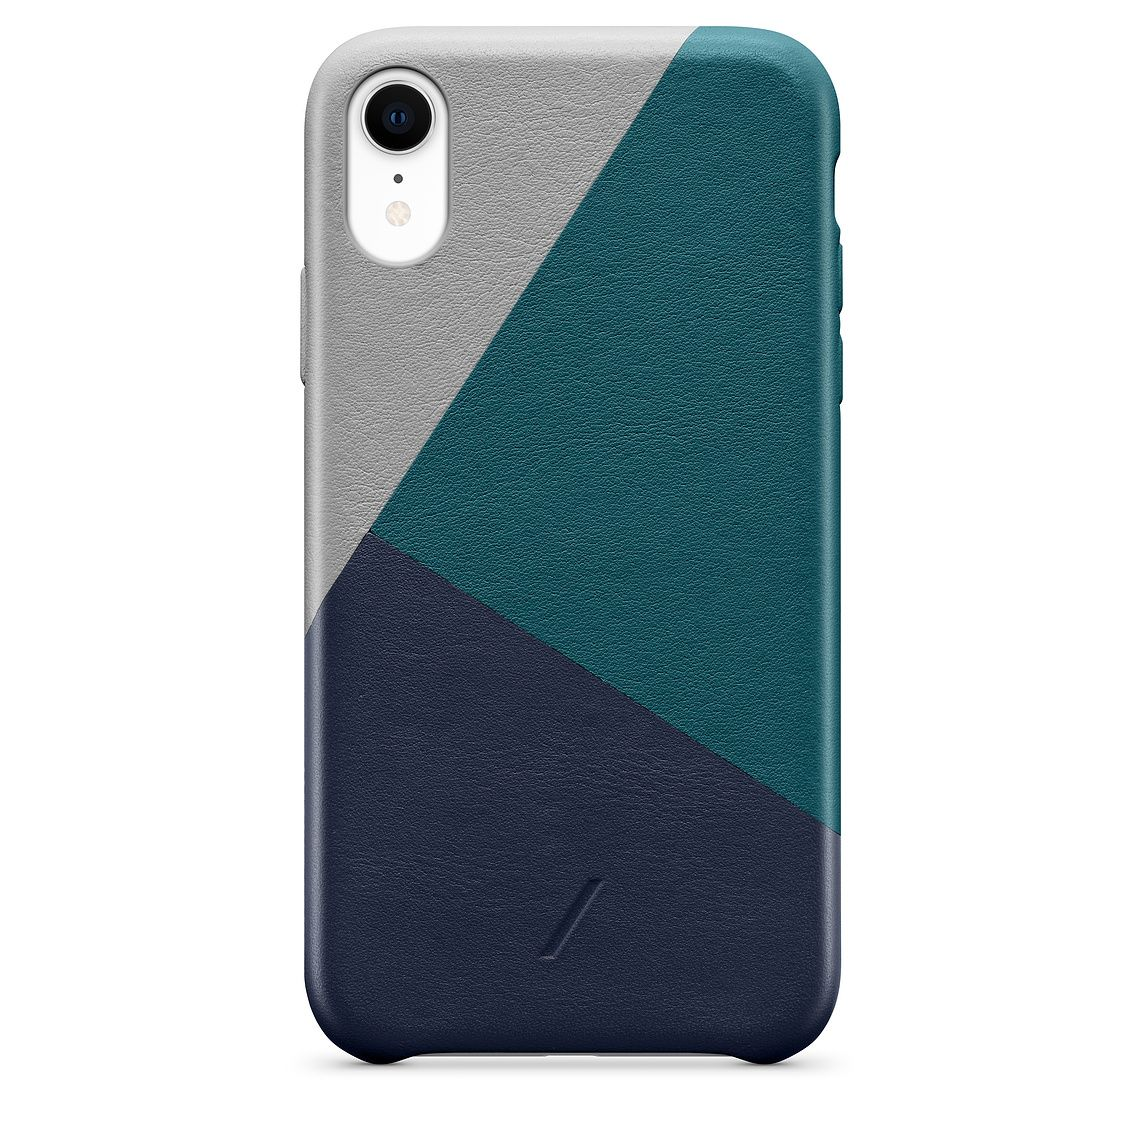 Native union clic marquetry leather case for iphone xr